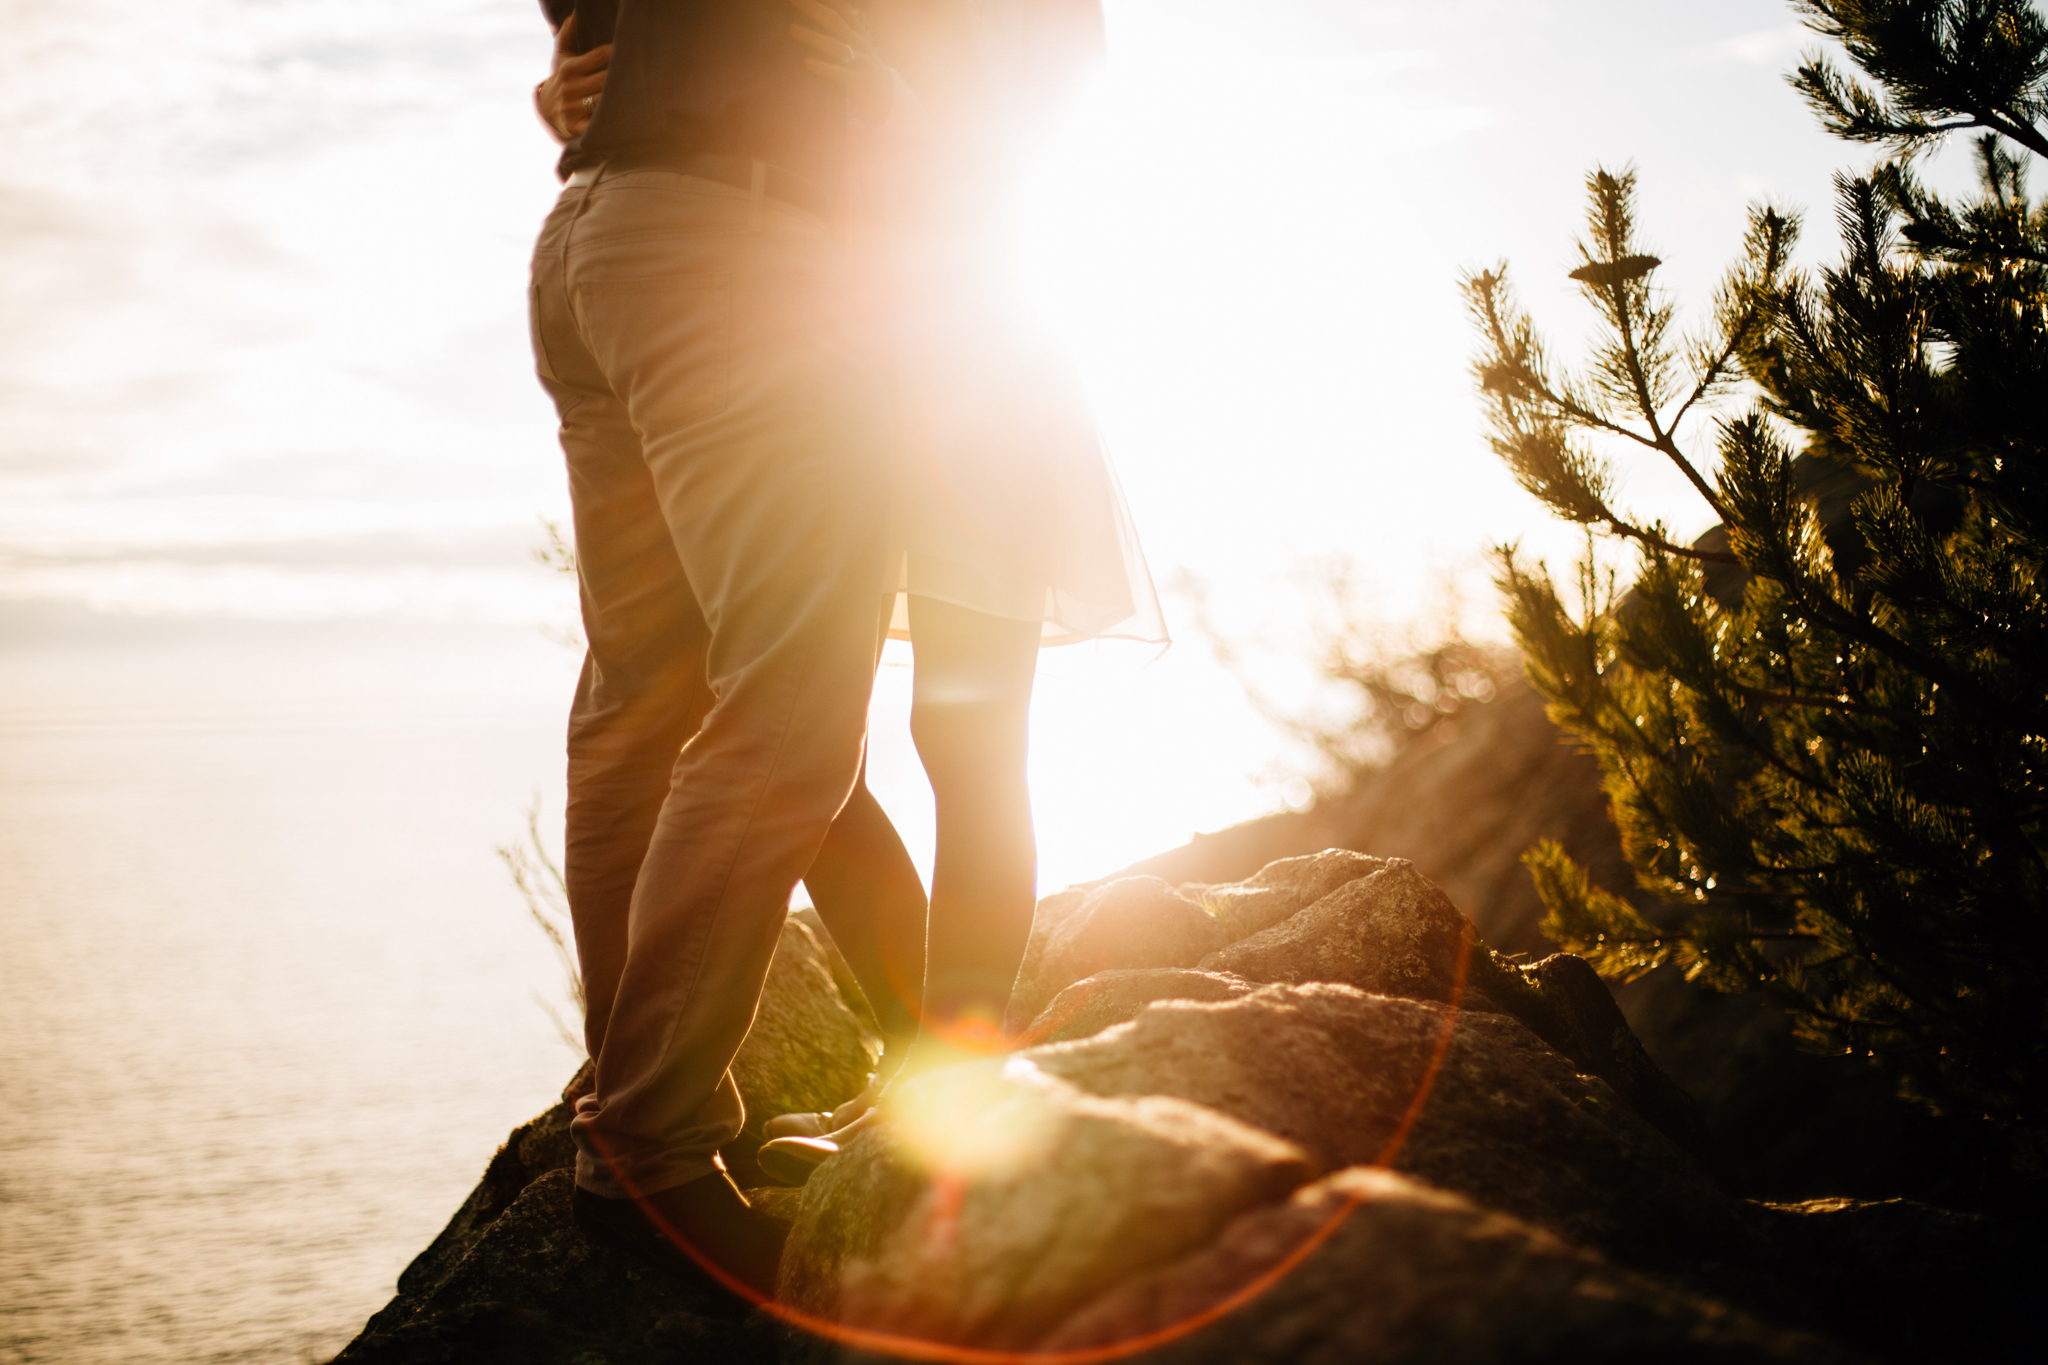 Vancouver Whytecliff Park Engagement Photographer - Emmy Lou Virginia Photography-20.jpg